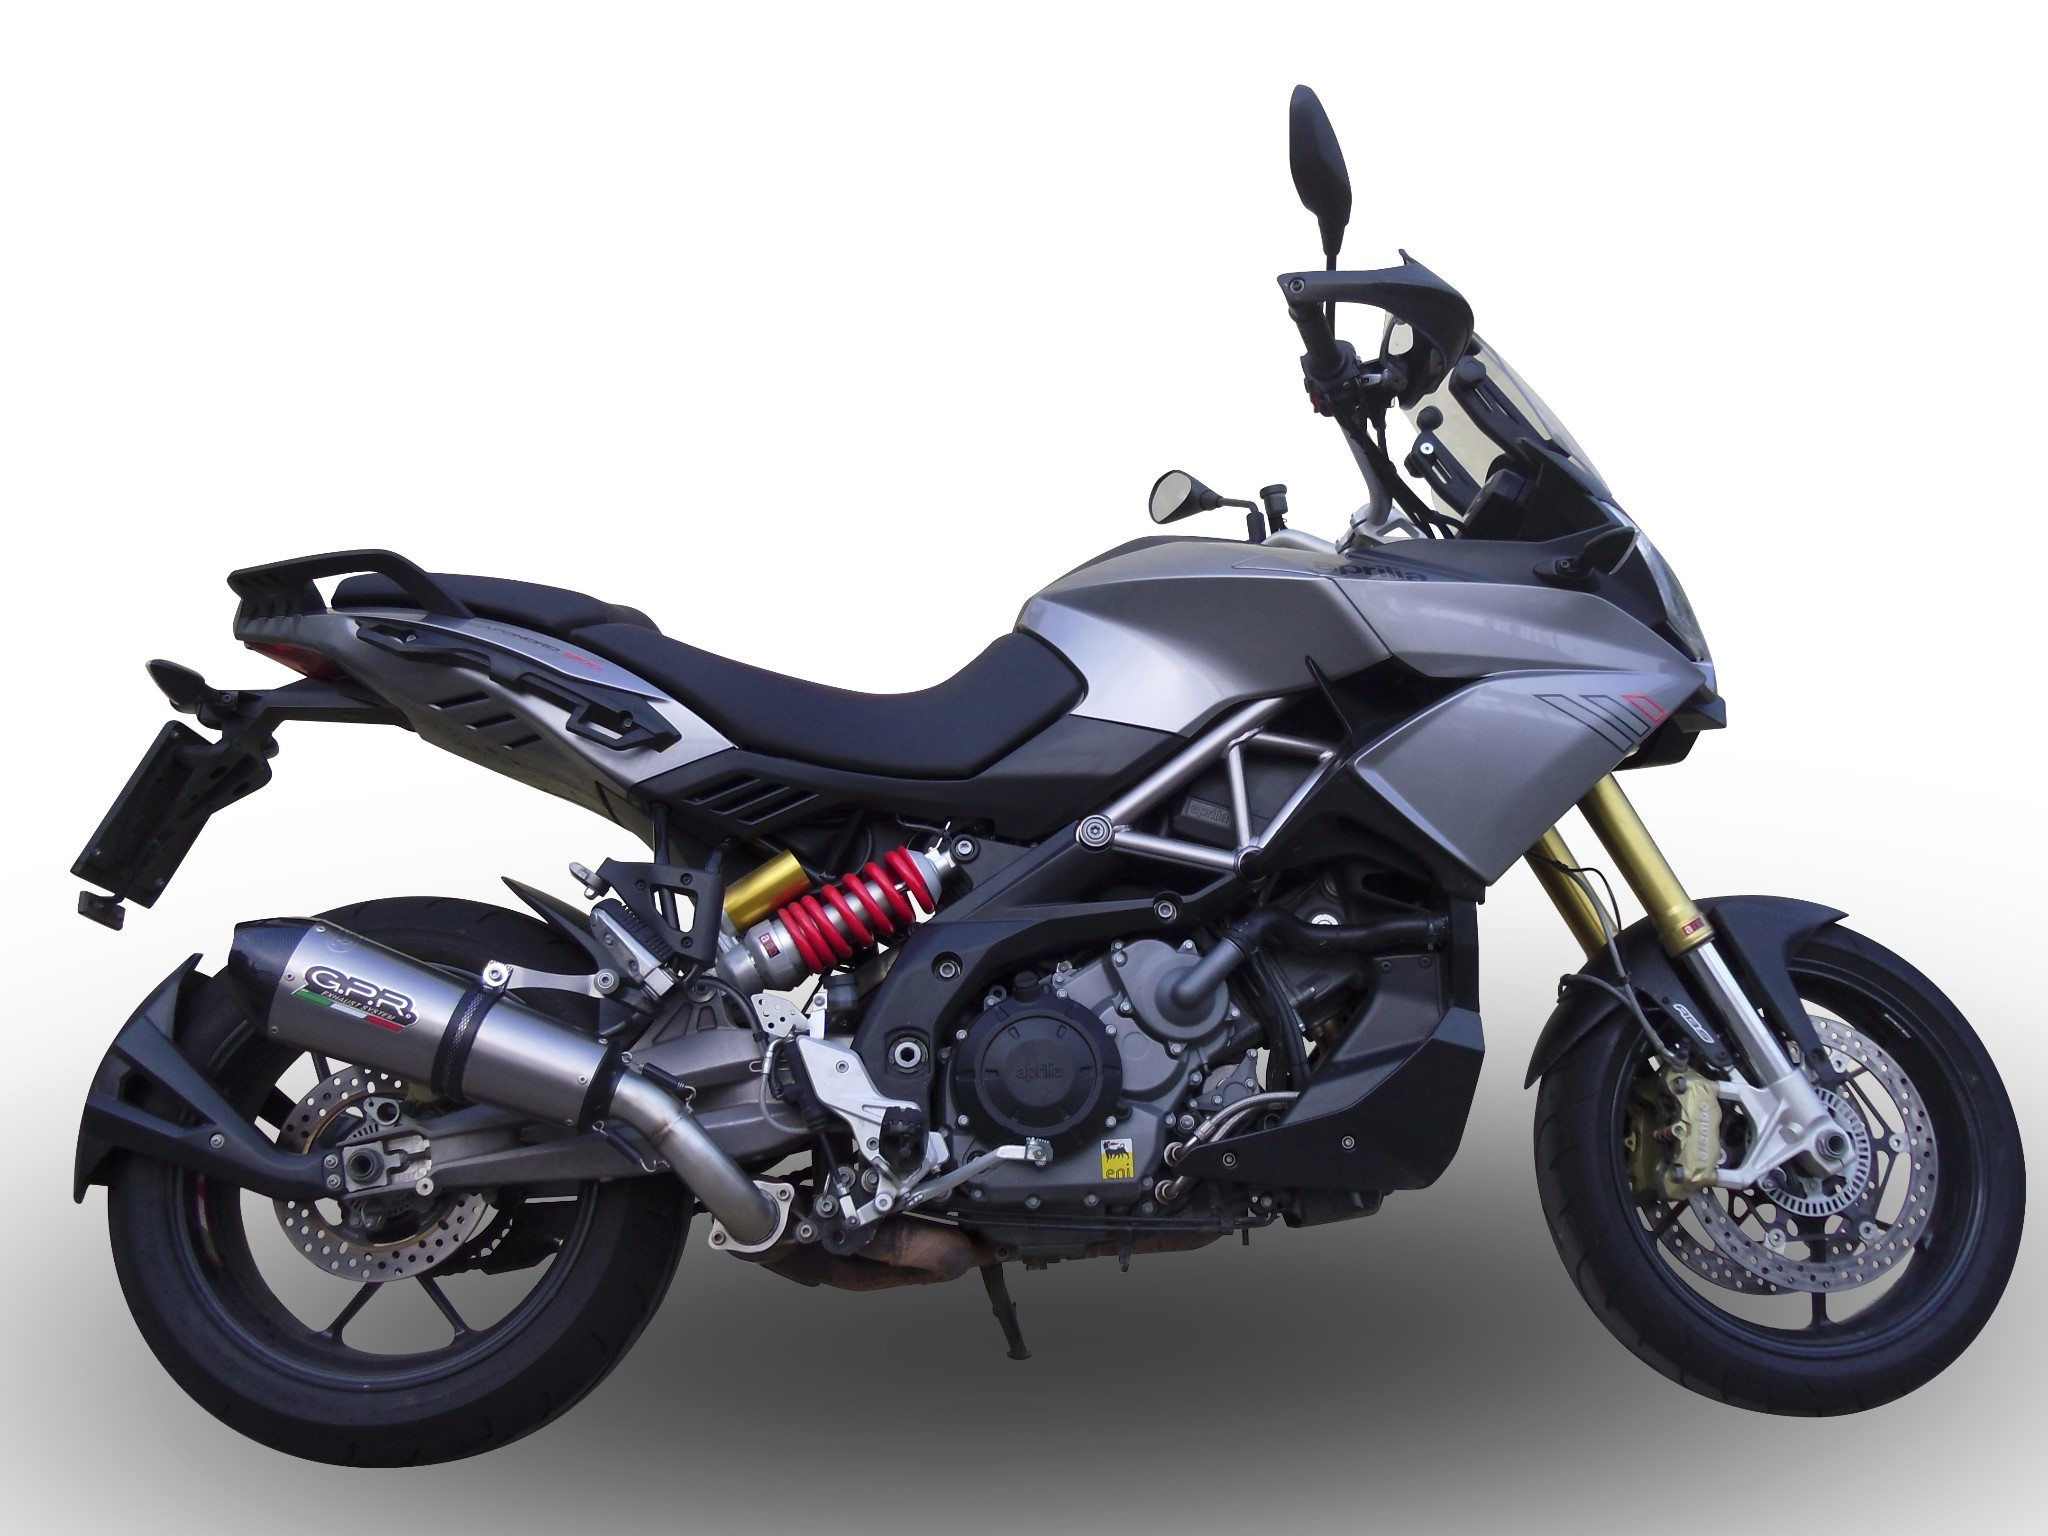 aprilia caponord 1200 gpr exhaust gpe titanium slipon silencer road legal ebay. Black Bedroom Furniture Sets. Home Design Ideas